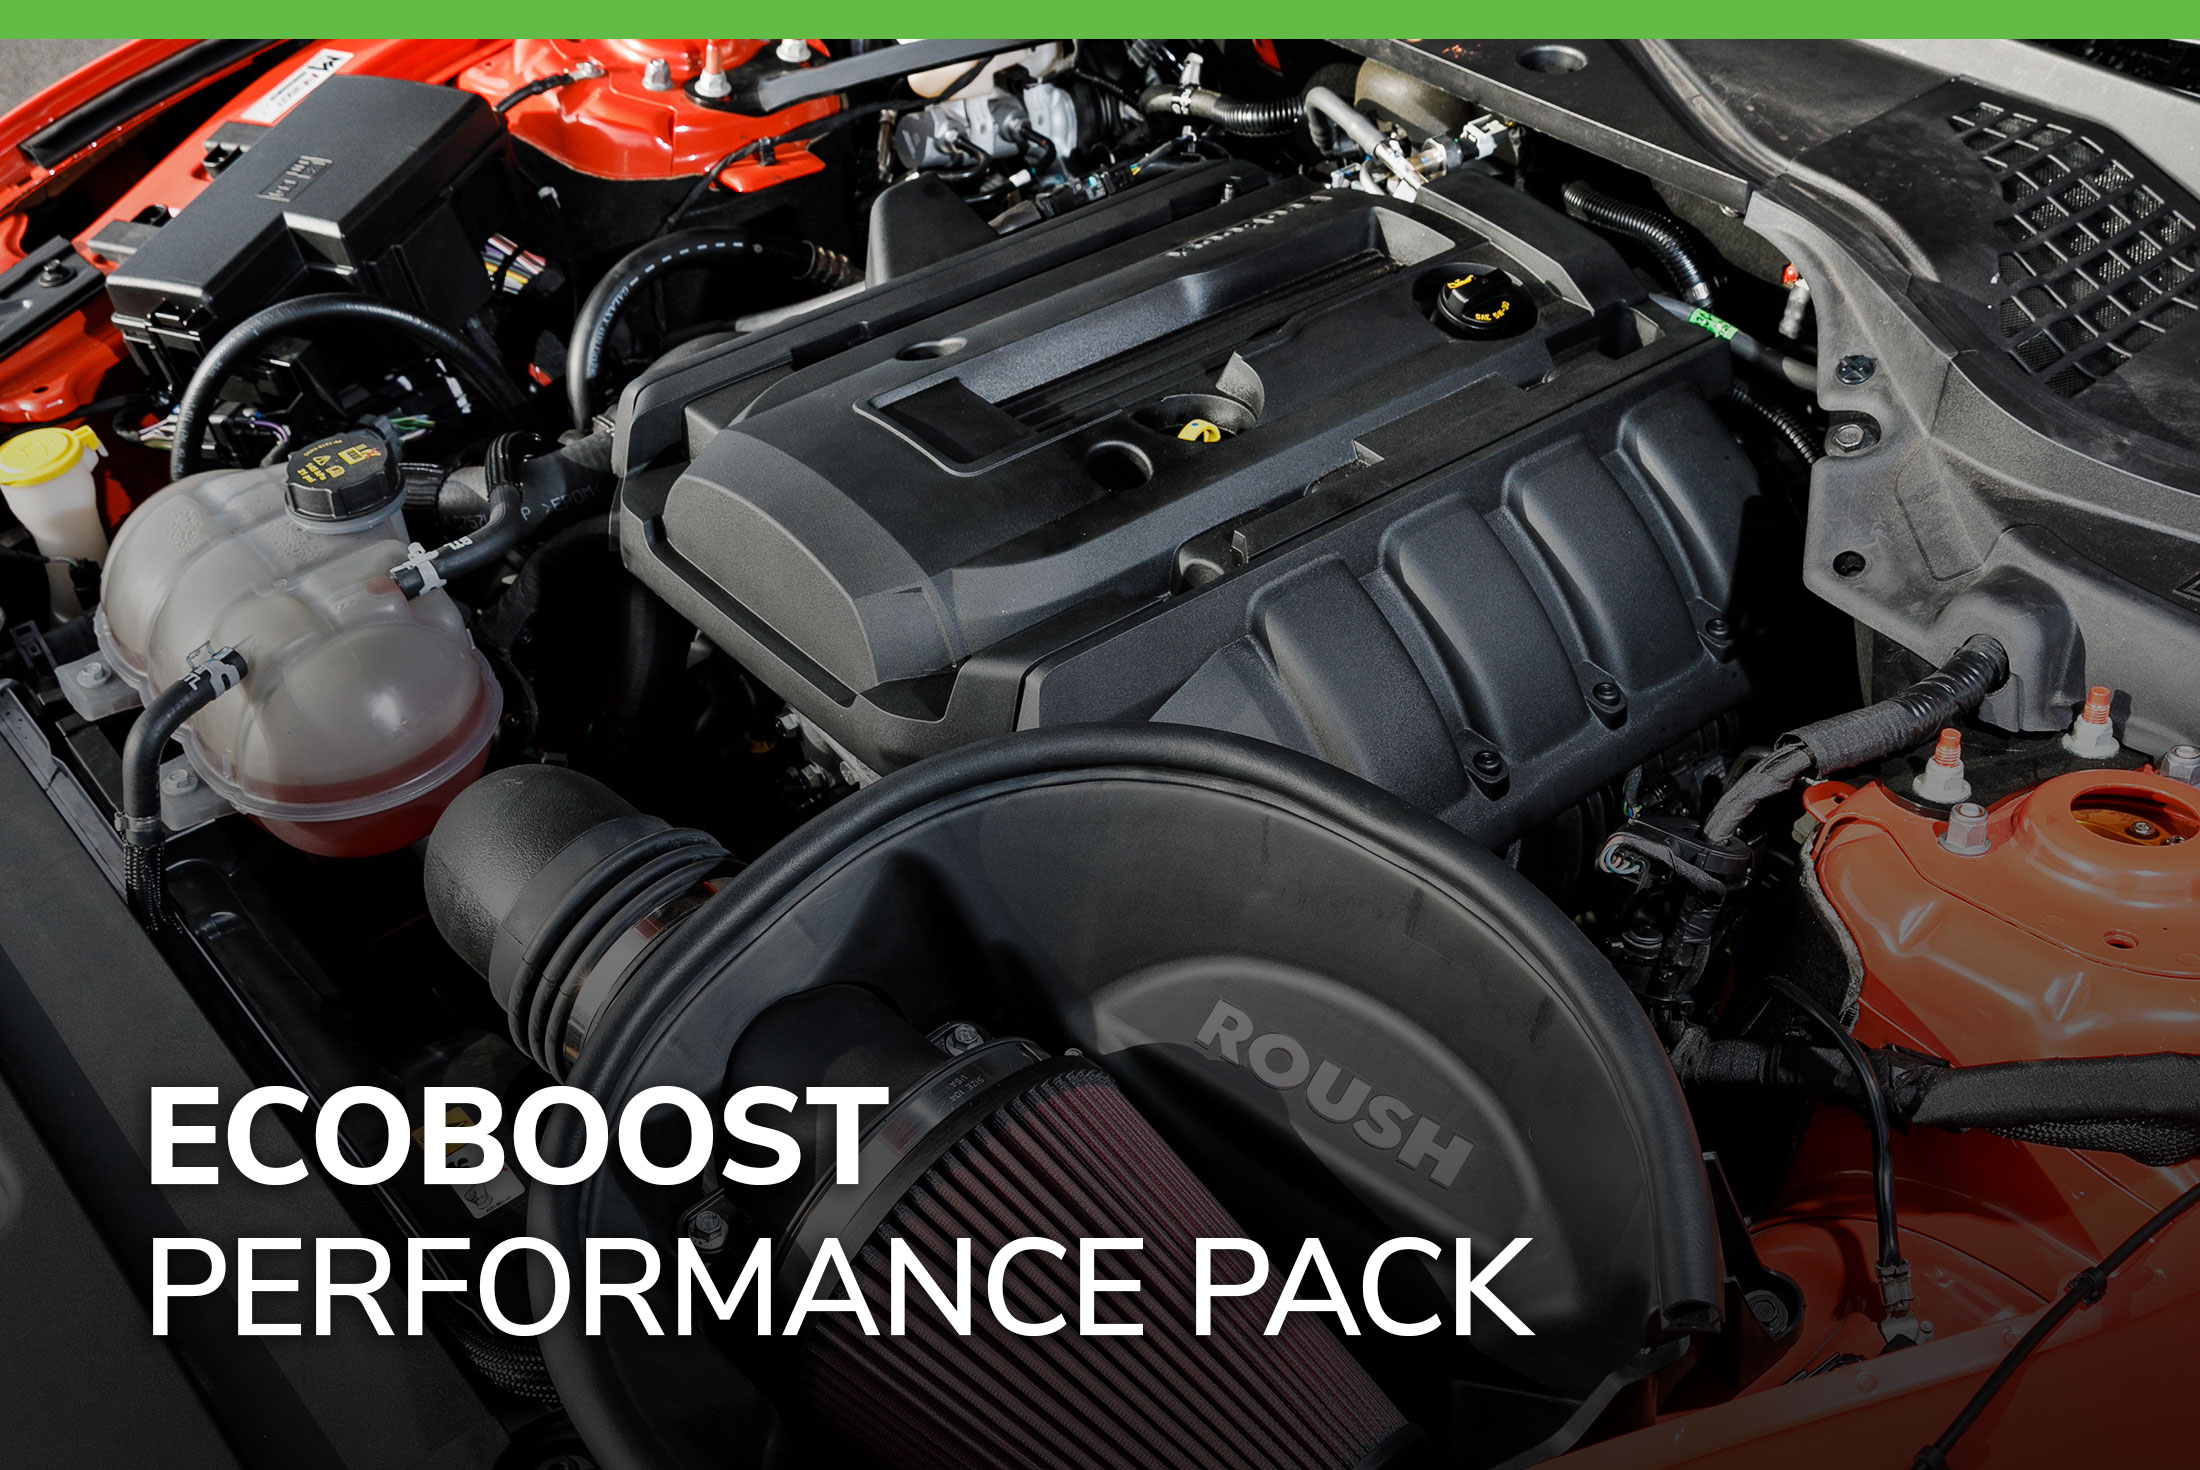 powerpack-roush-ecoboost